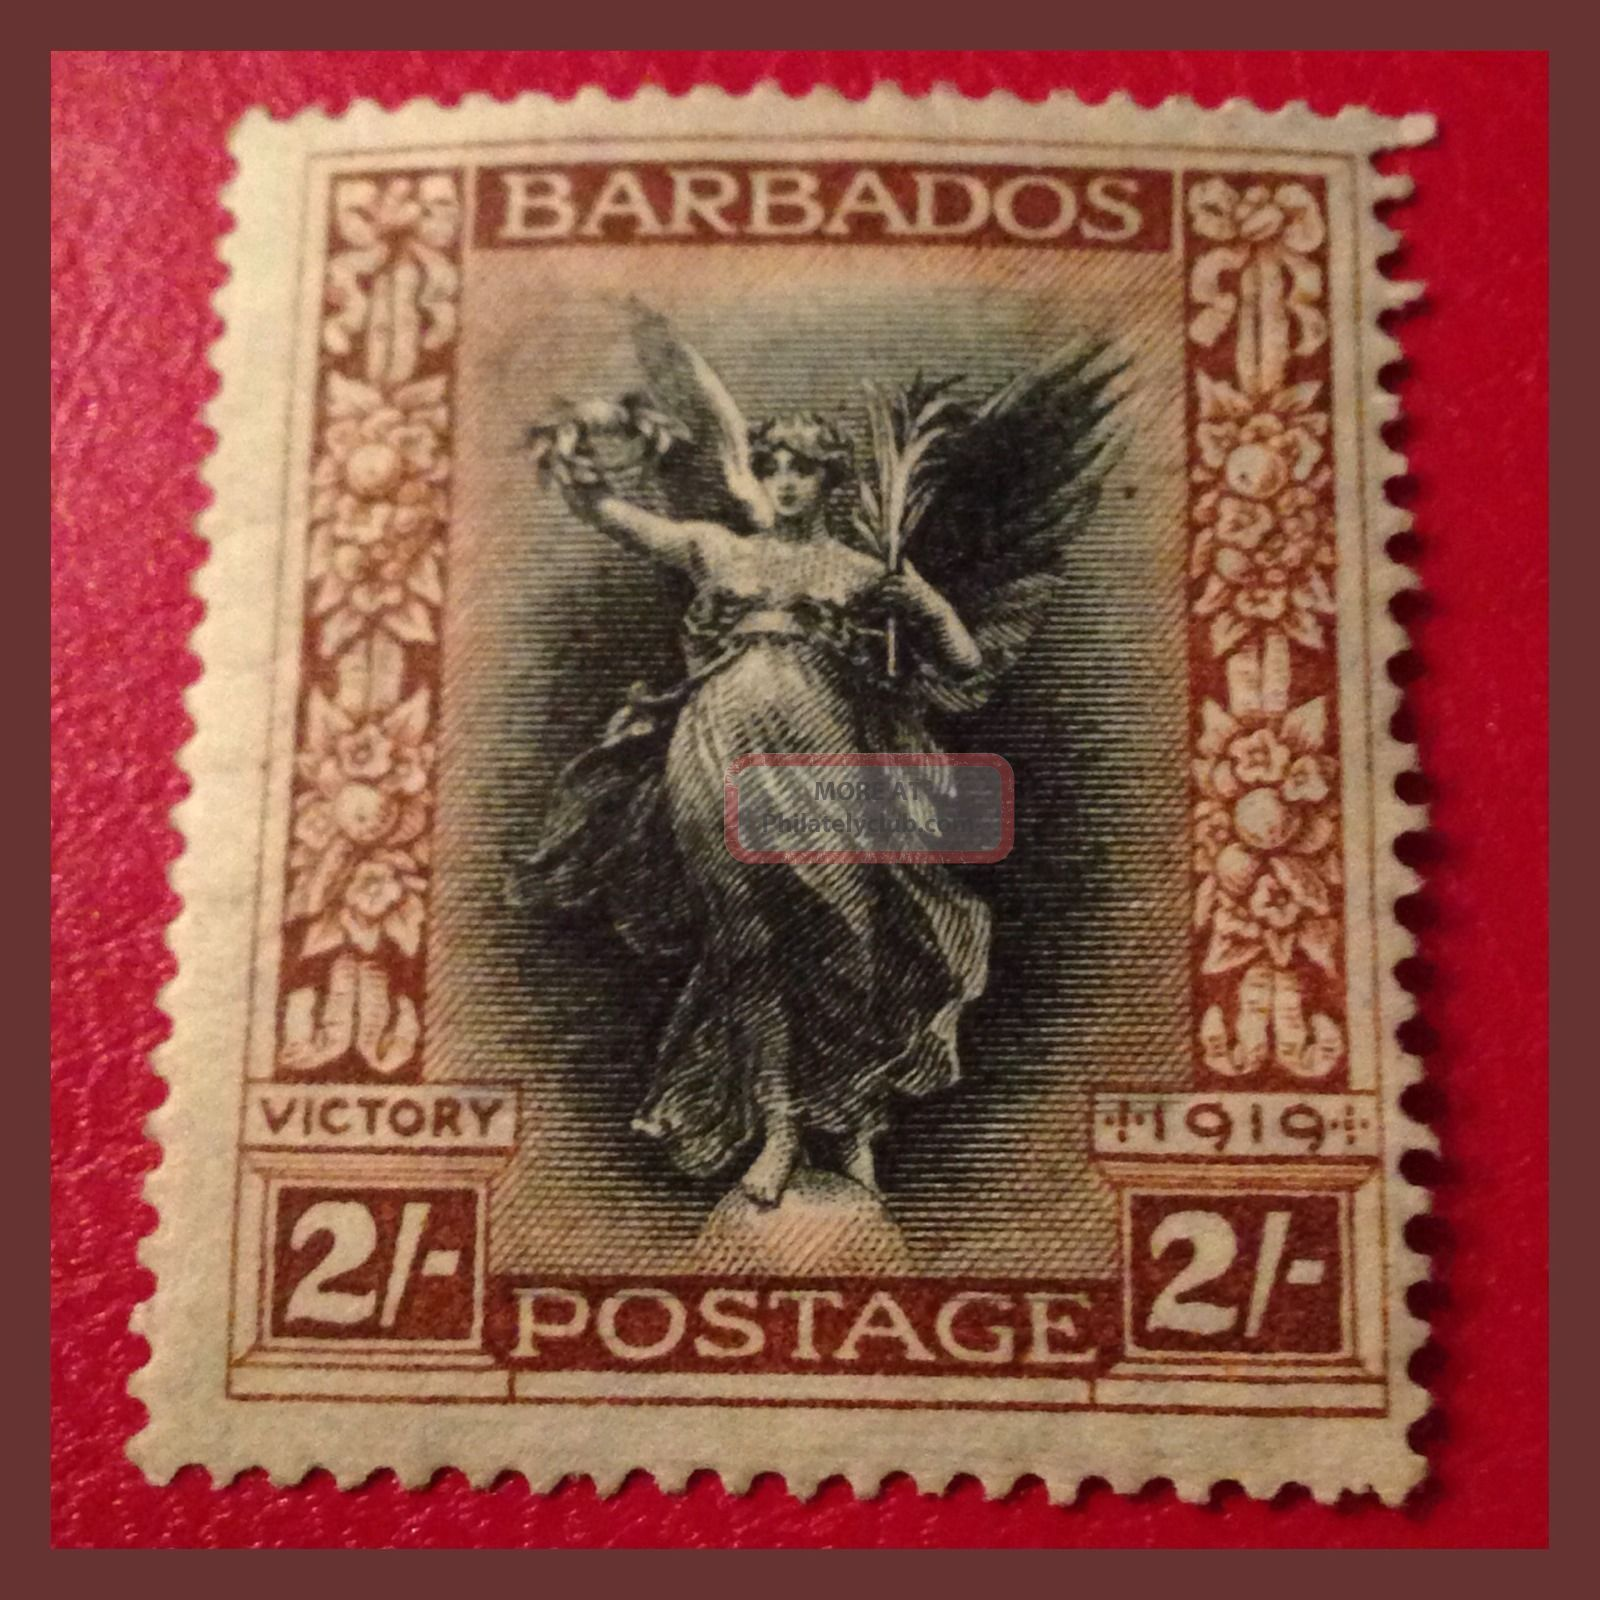 Barbados 1920 - 2/ - Victory From Victoria Memorial Mh/very Fine As Per Scans British Colonies & Territories photo